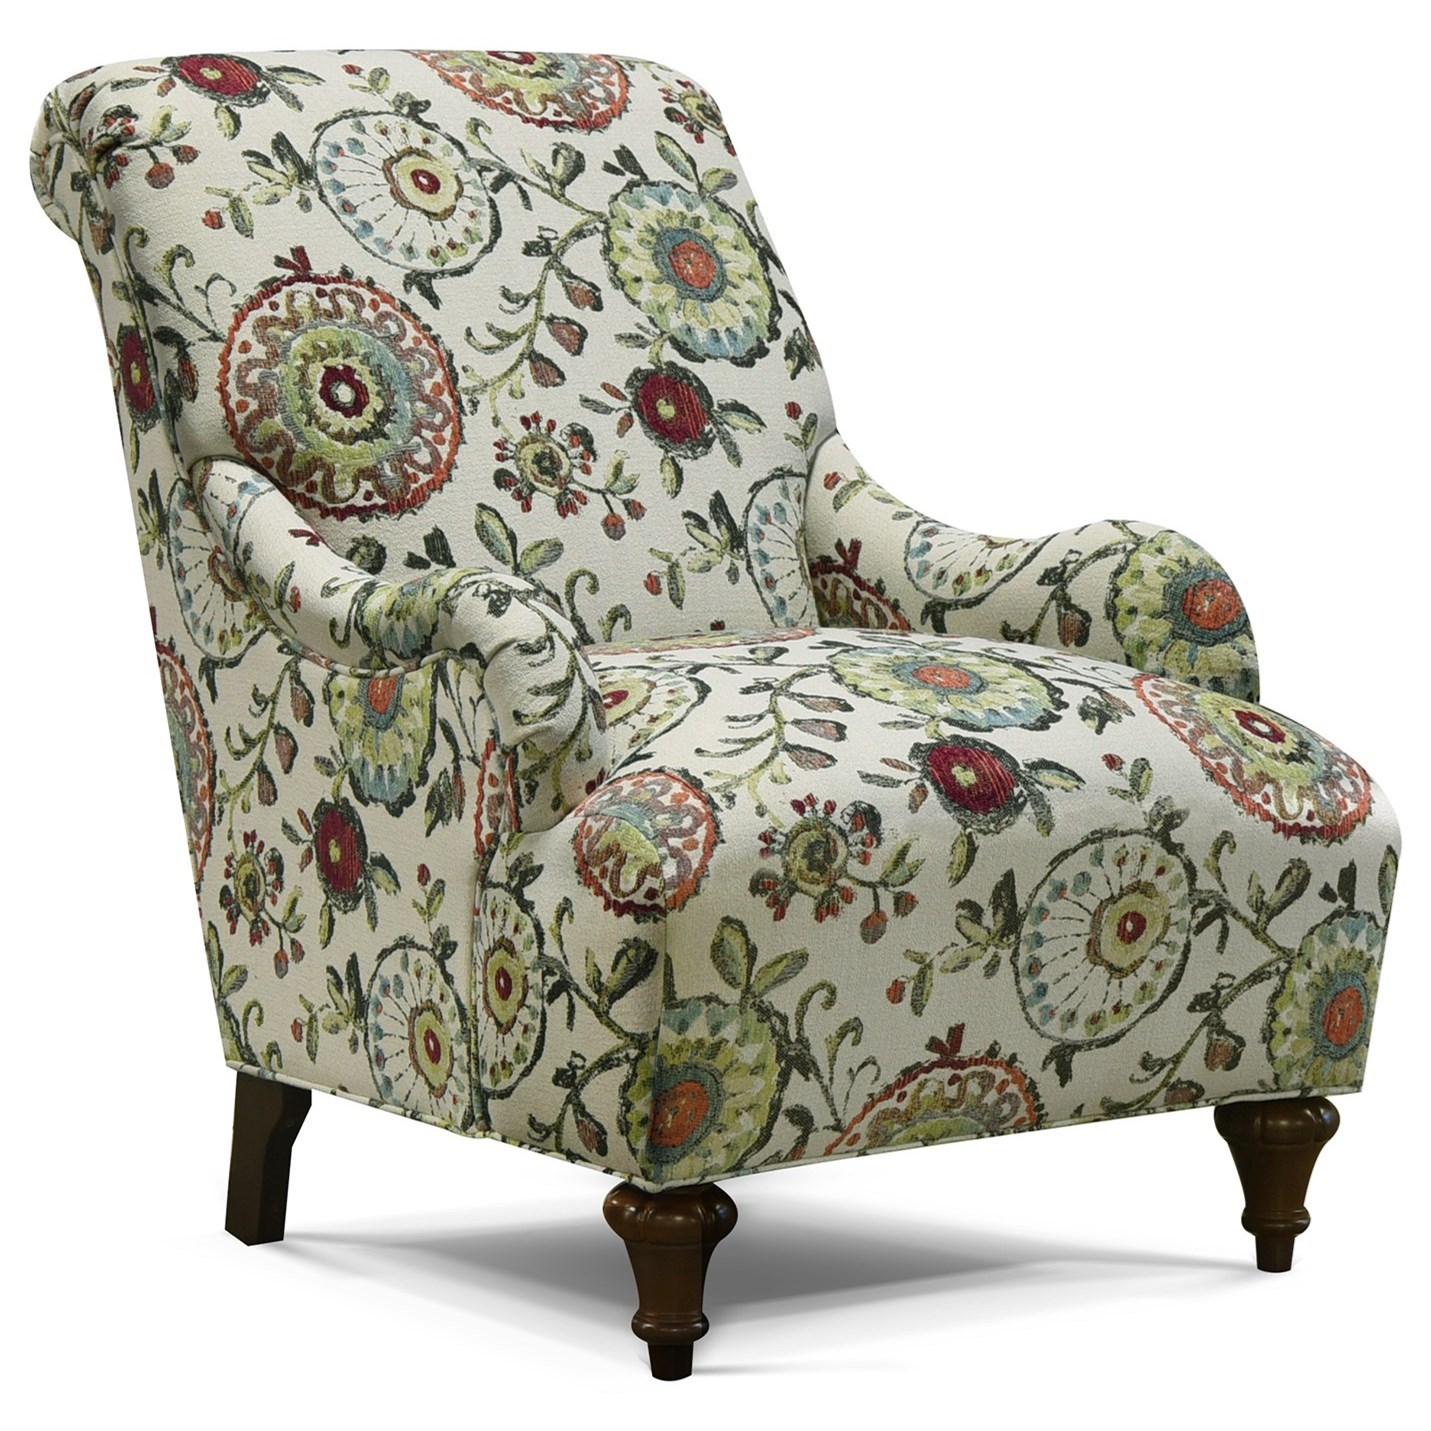 Kelsey Chair  by England at A1 Furniture & Mattress